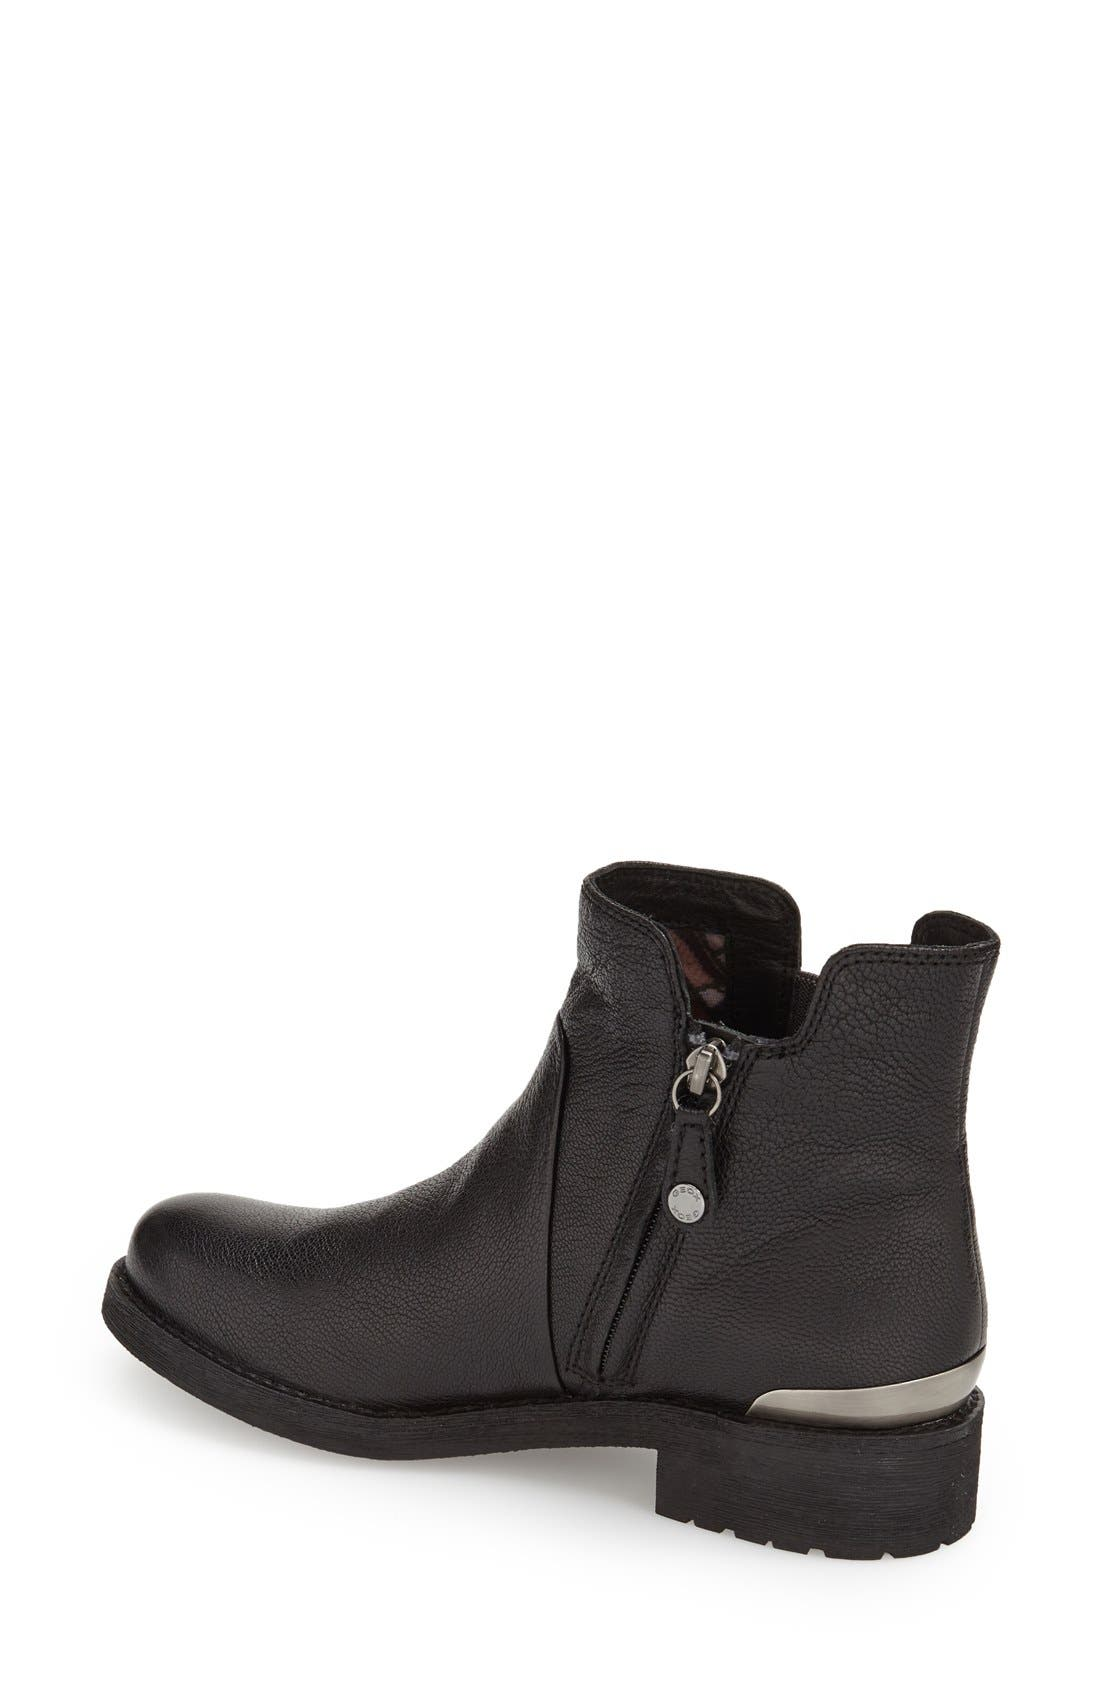 'New Virna' Chelsea Boot,                             Alternate thumbnail 2, color,                             BLACK SMOOTH LEATHER